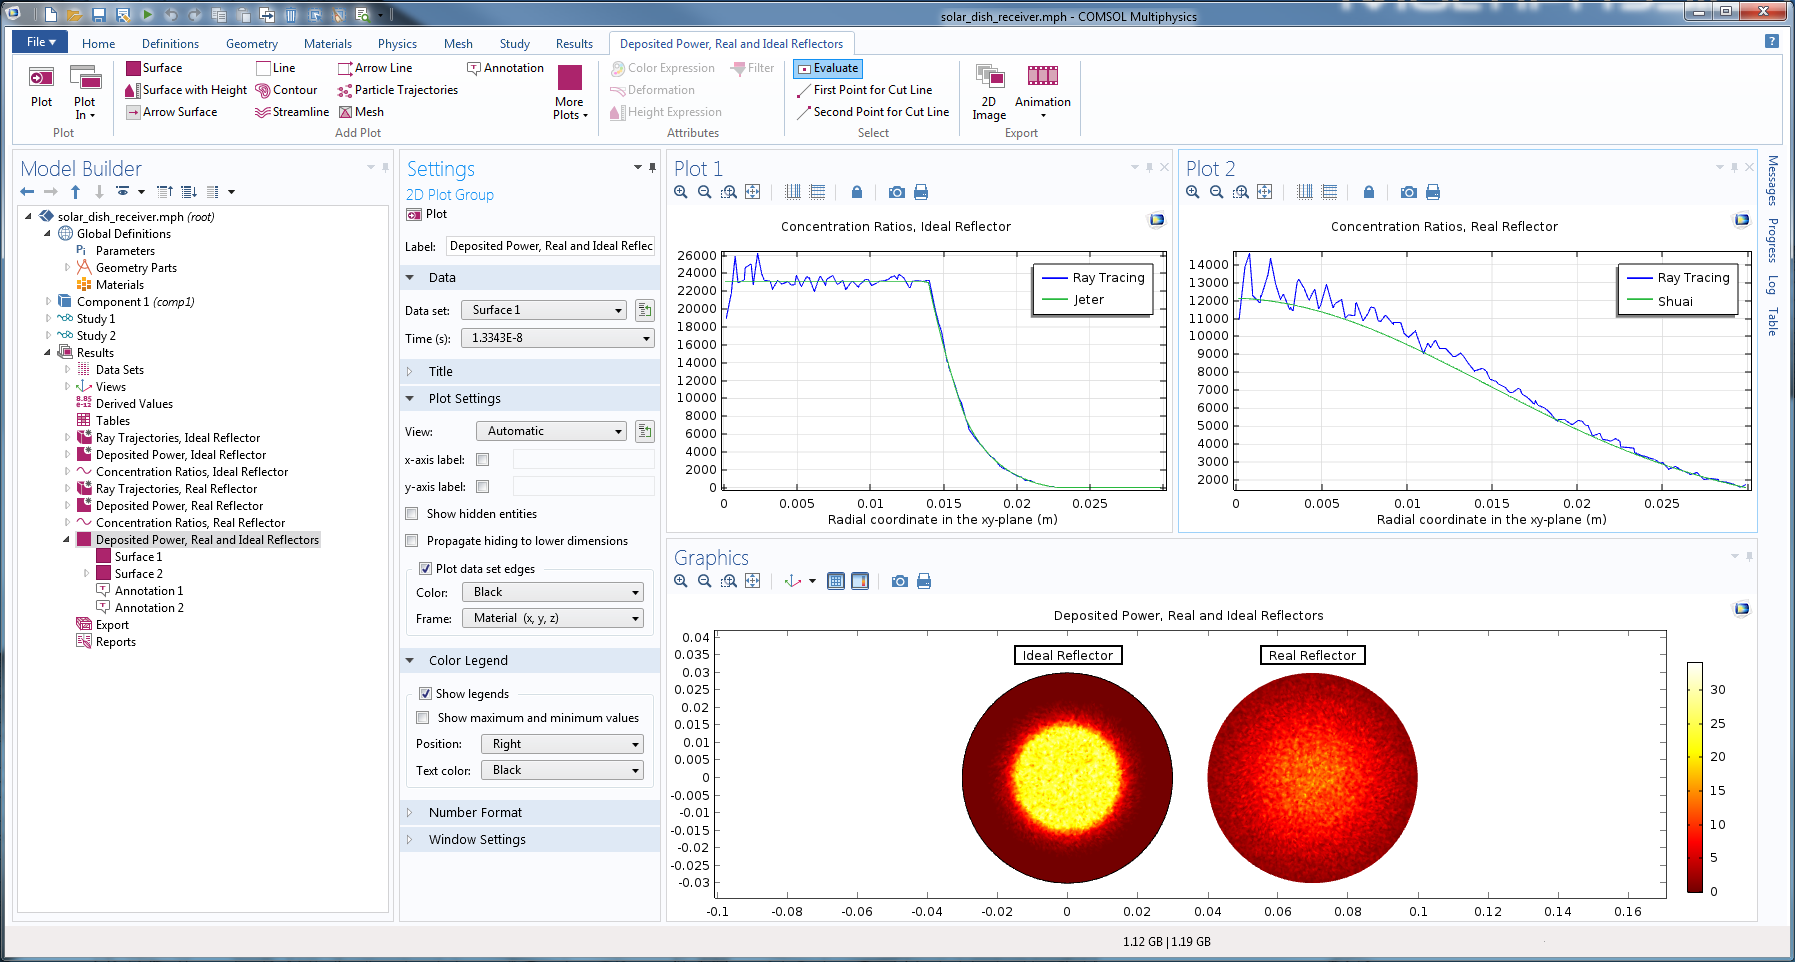 Screenshot depicting the UI and results of the Solar Dish Receiver tutorial model.